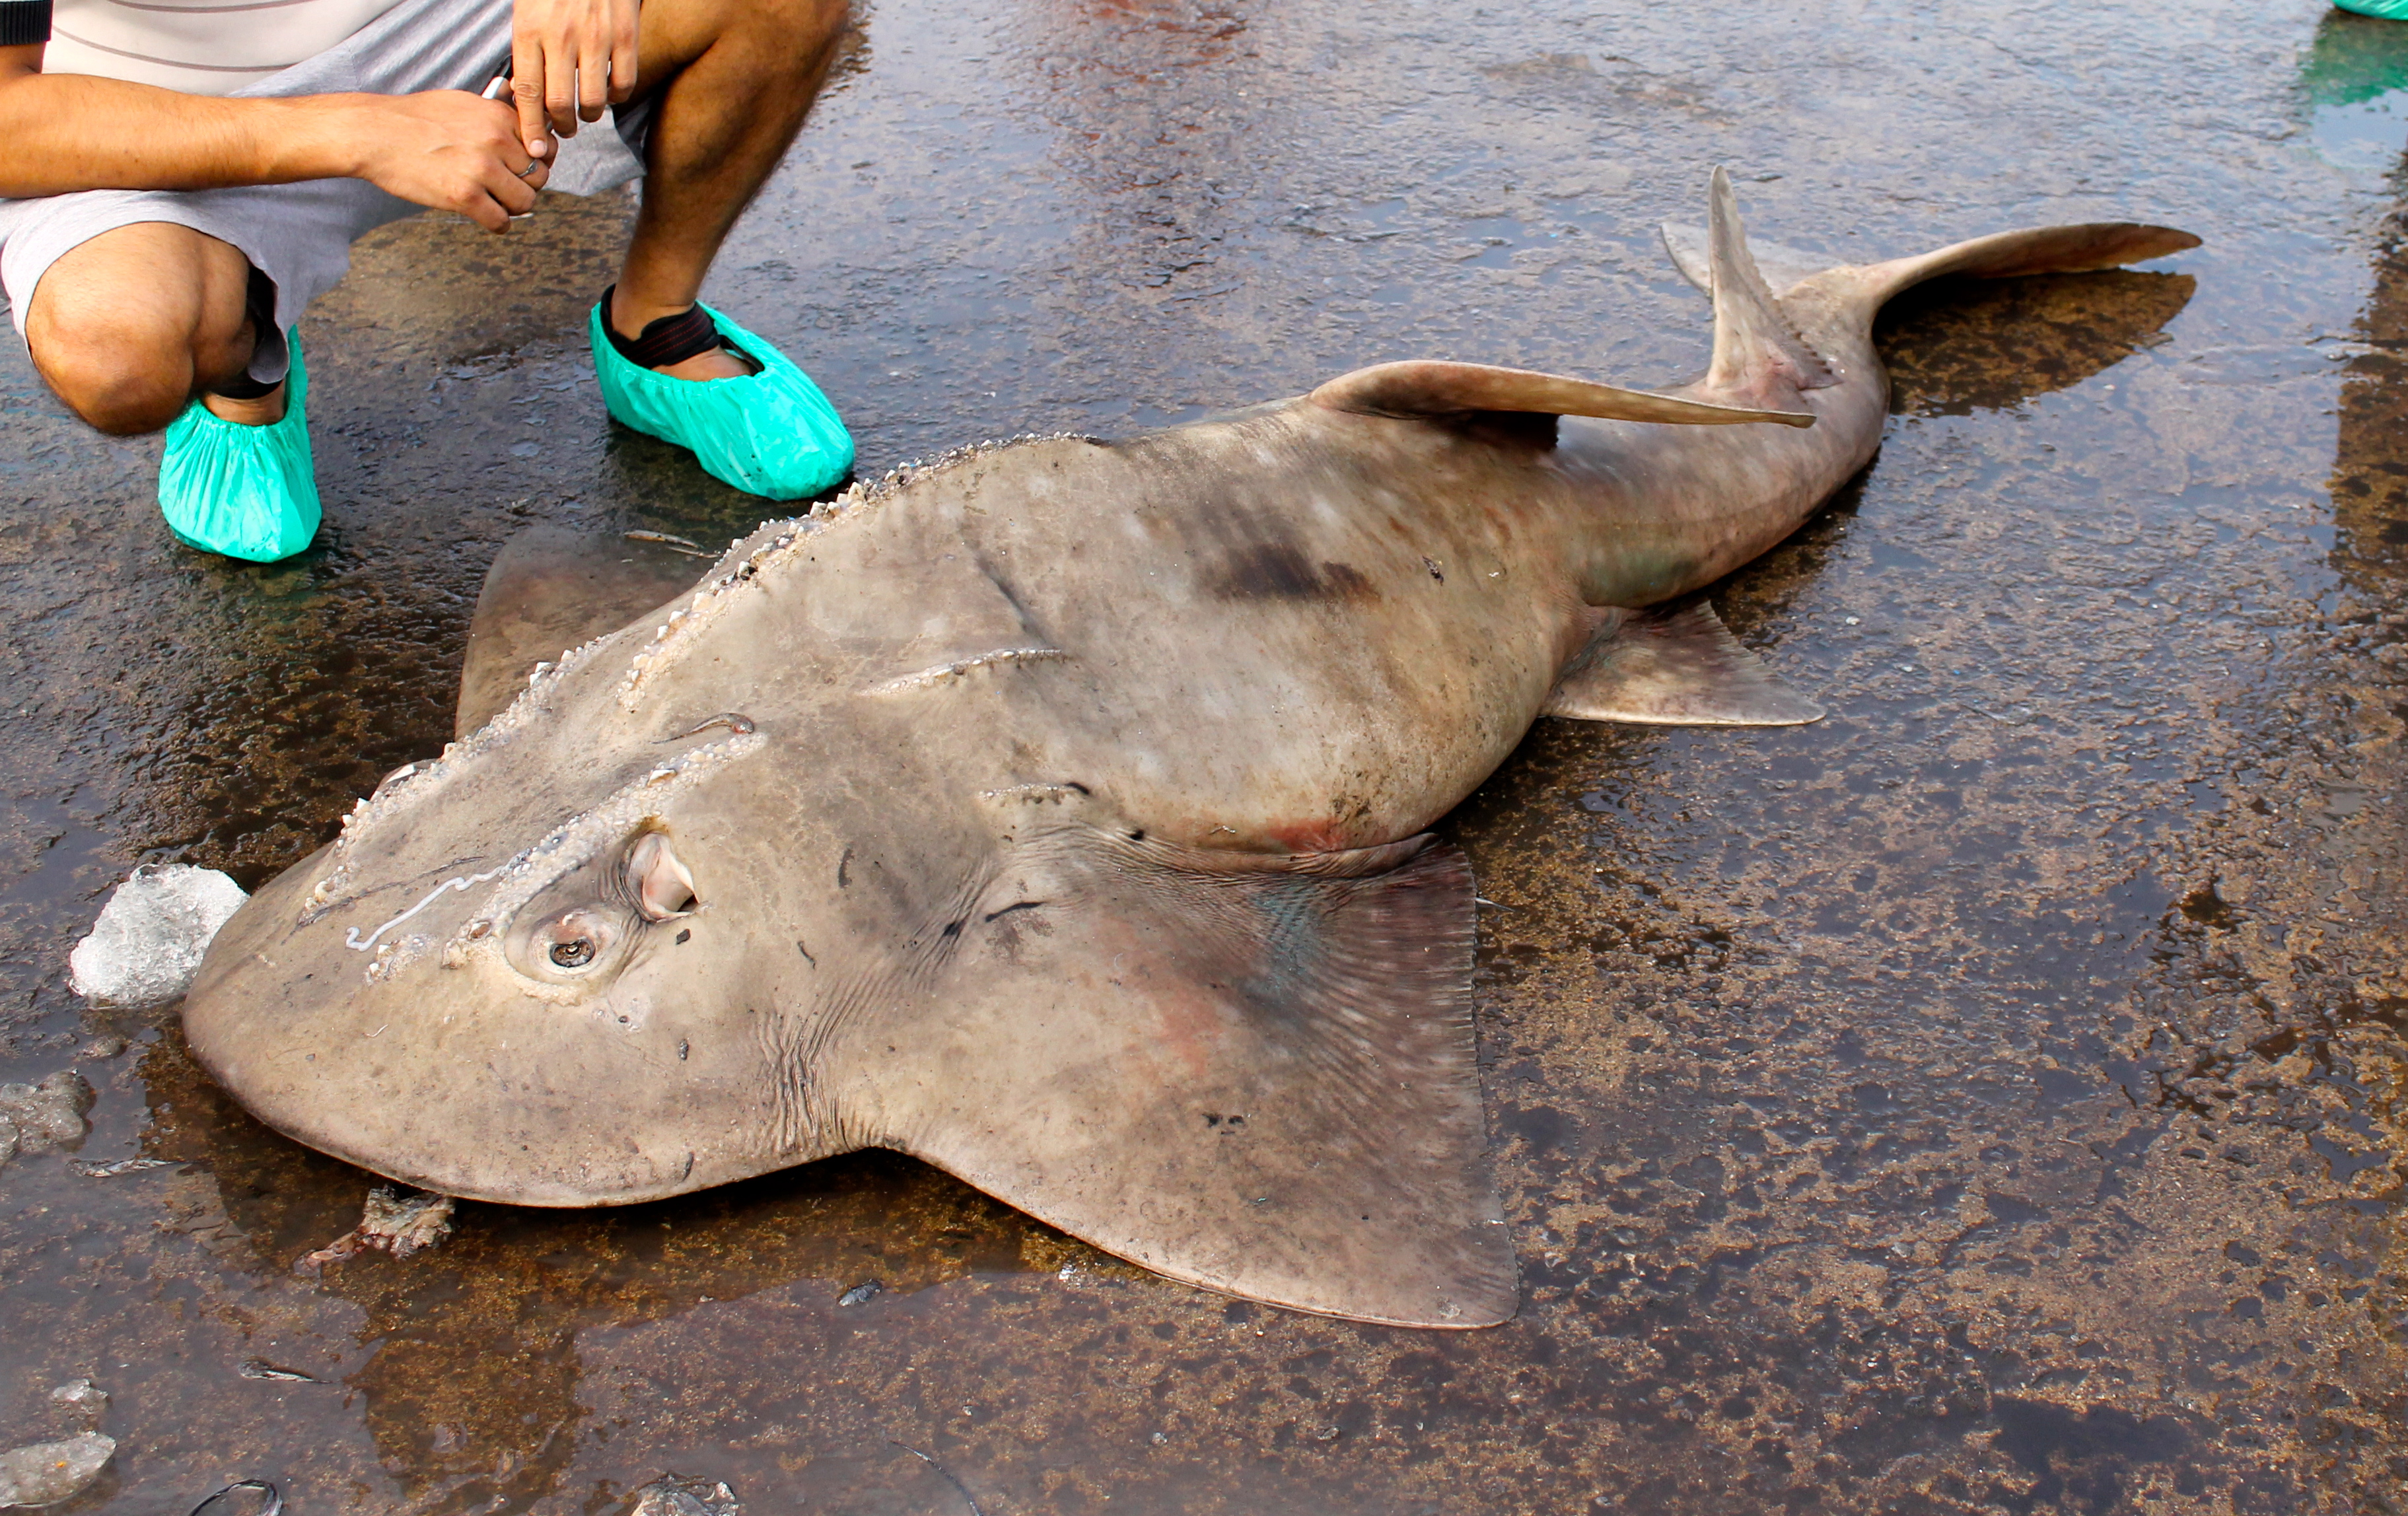 A bowmouth guitarshark, accidentally caught in a gill net © Nisha D'Souza